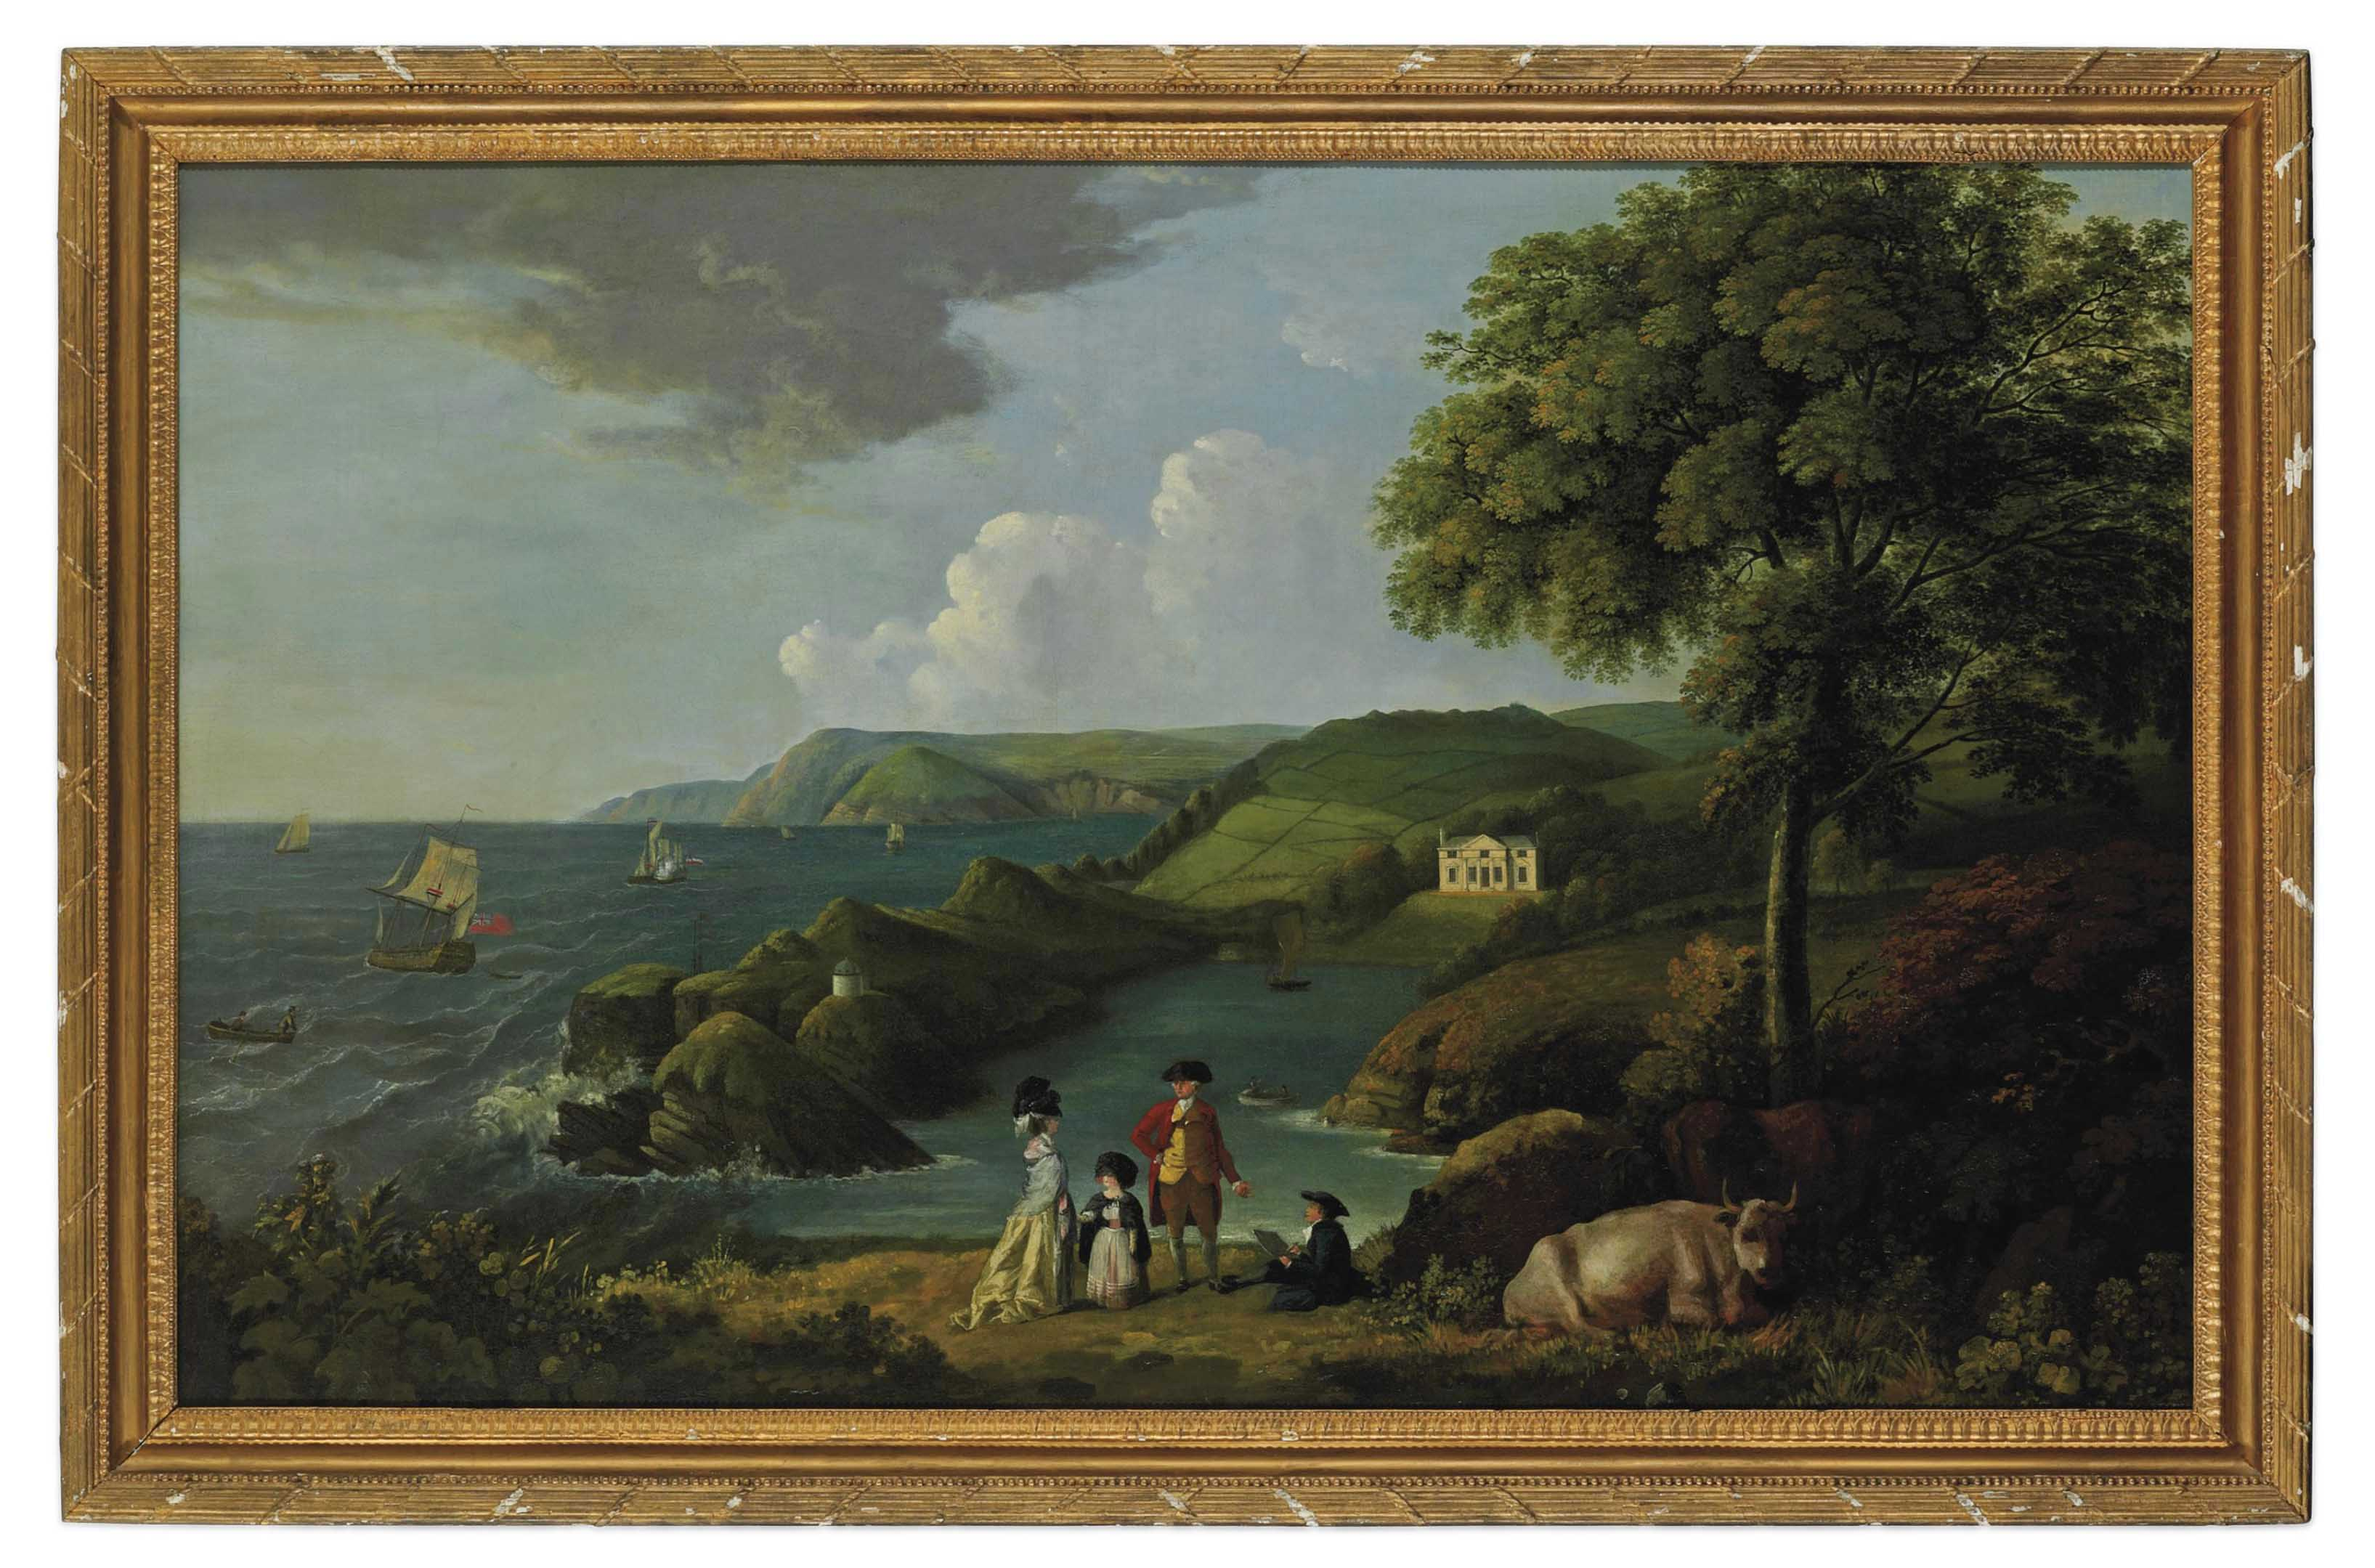 A coastal landscape with a classical house, a couple with a child in the foreground with an artist sketching, shipping at sea